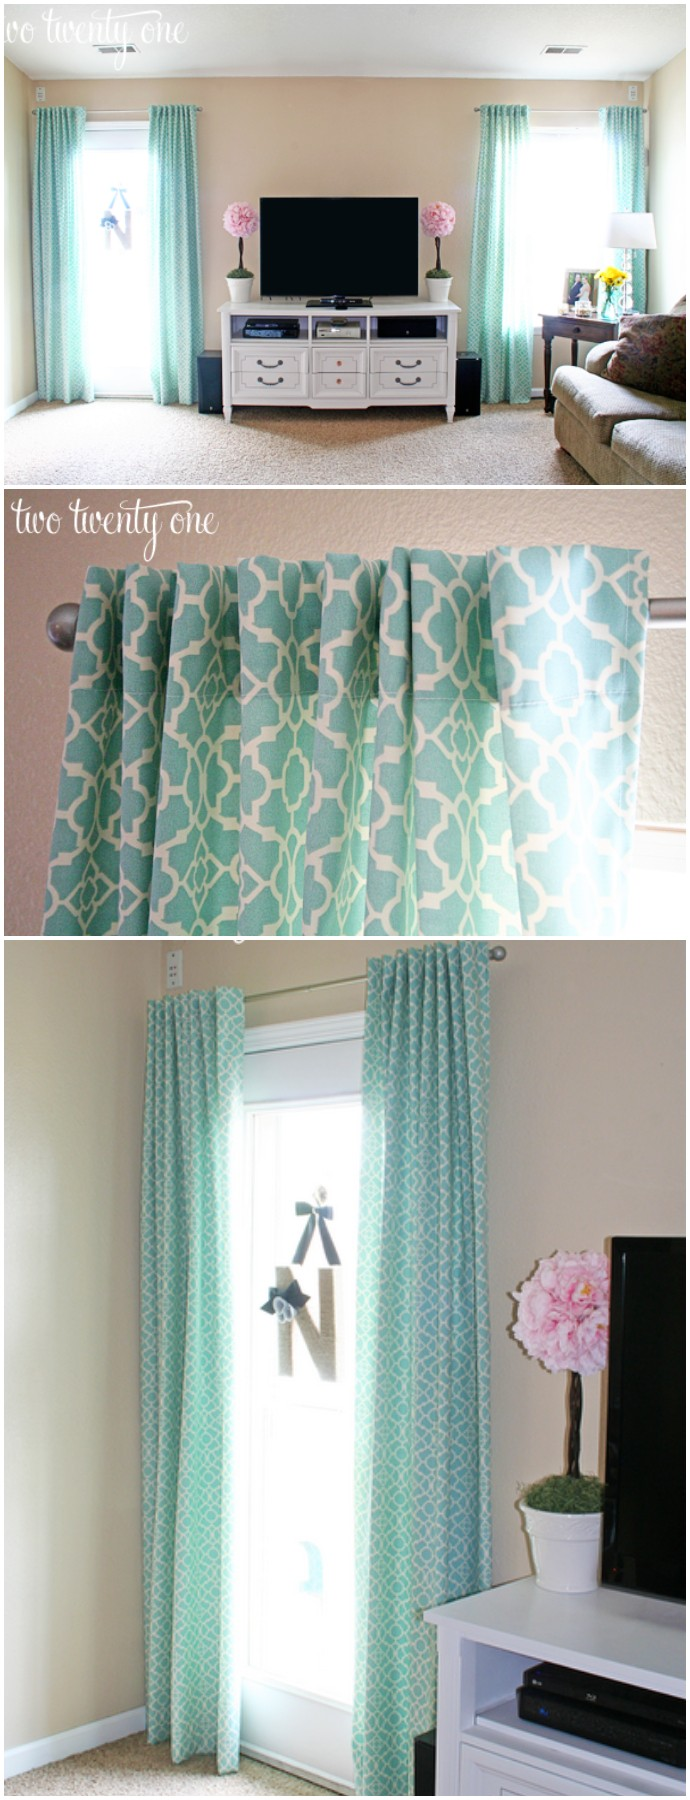 Make Curtains Diy Curtain Ideas Make Your Own Curtains